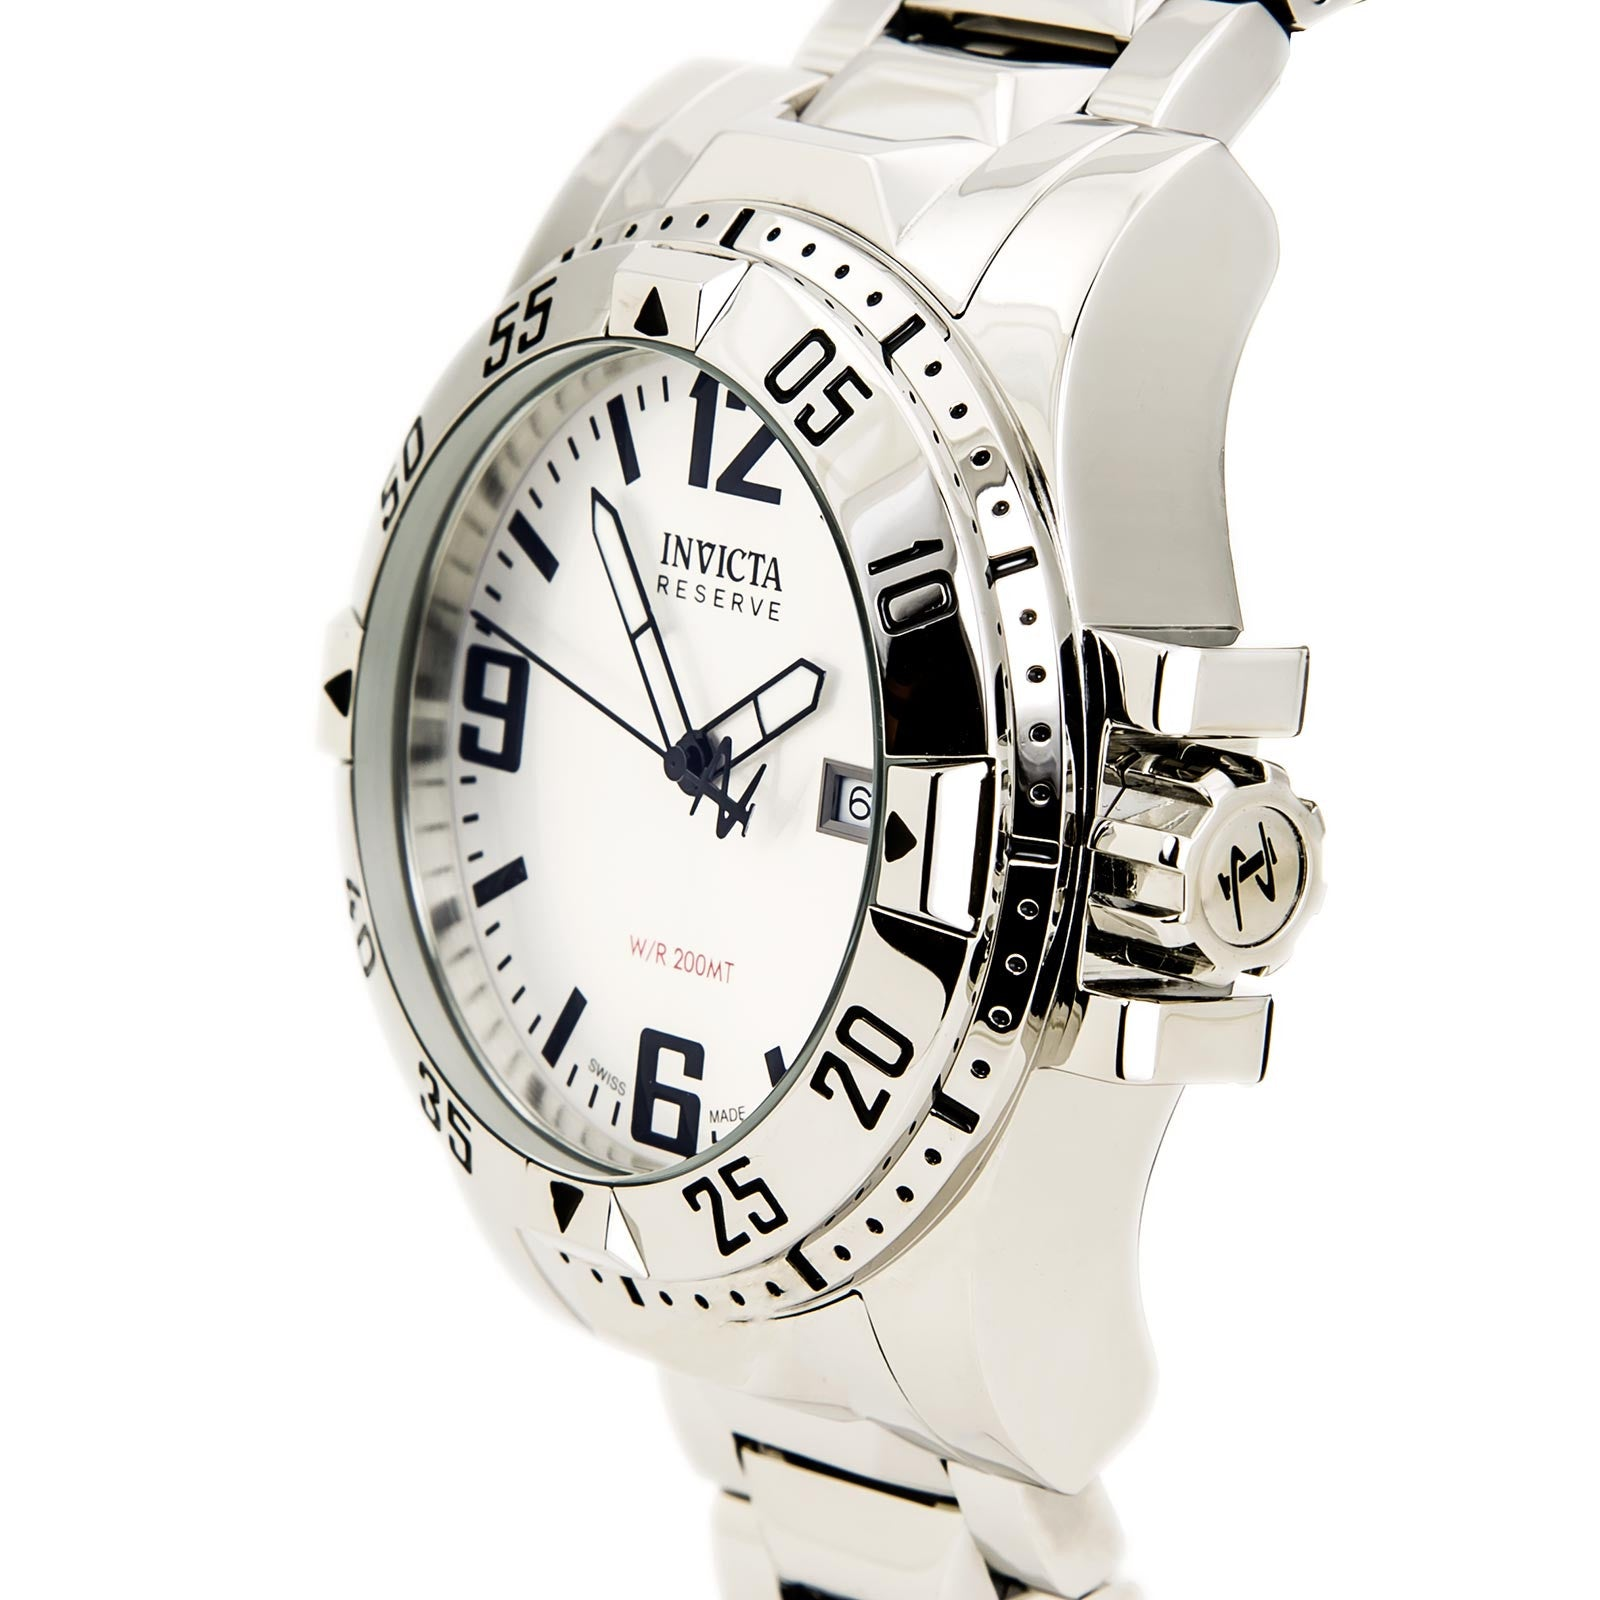 Invicta 5674 Men's Swiss Reserve Excursion Diver